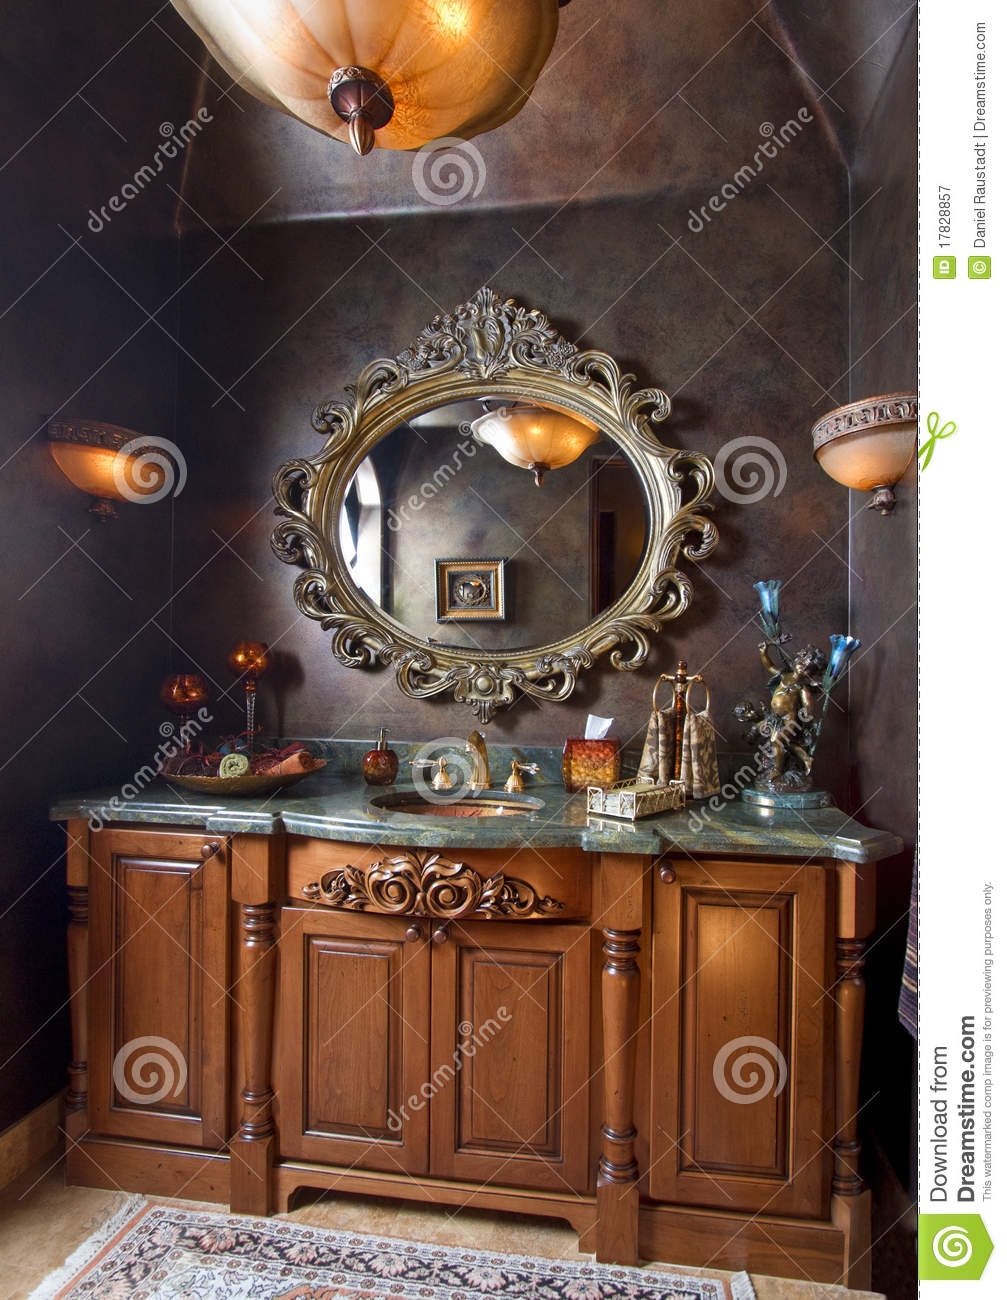 Elegant Bathroom Sinks Elegant Bathroom Sink Counter Top Stock Image Image Of Beautiful